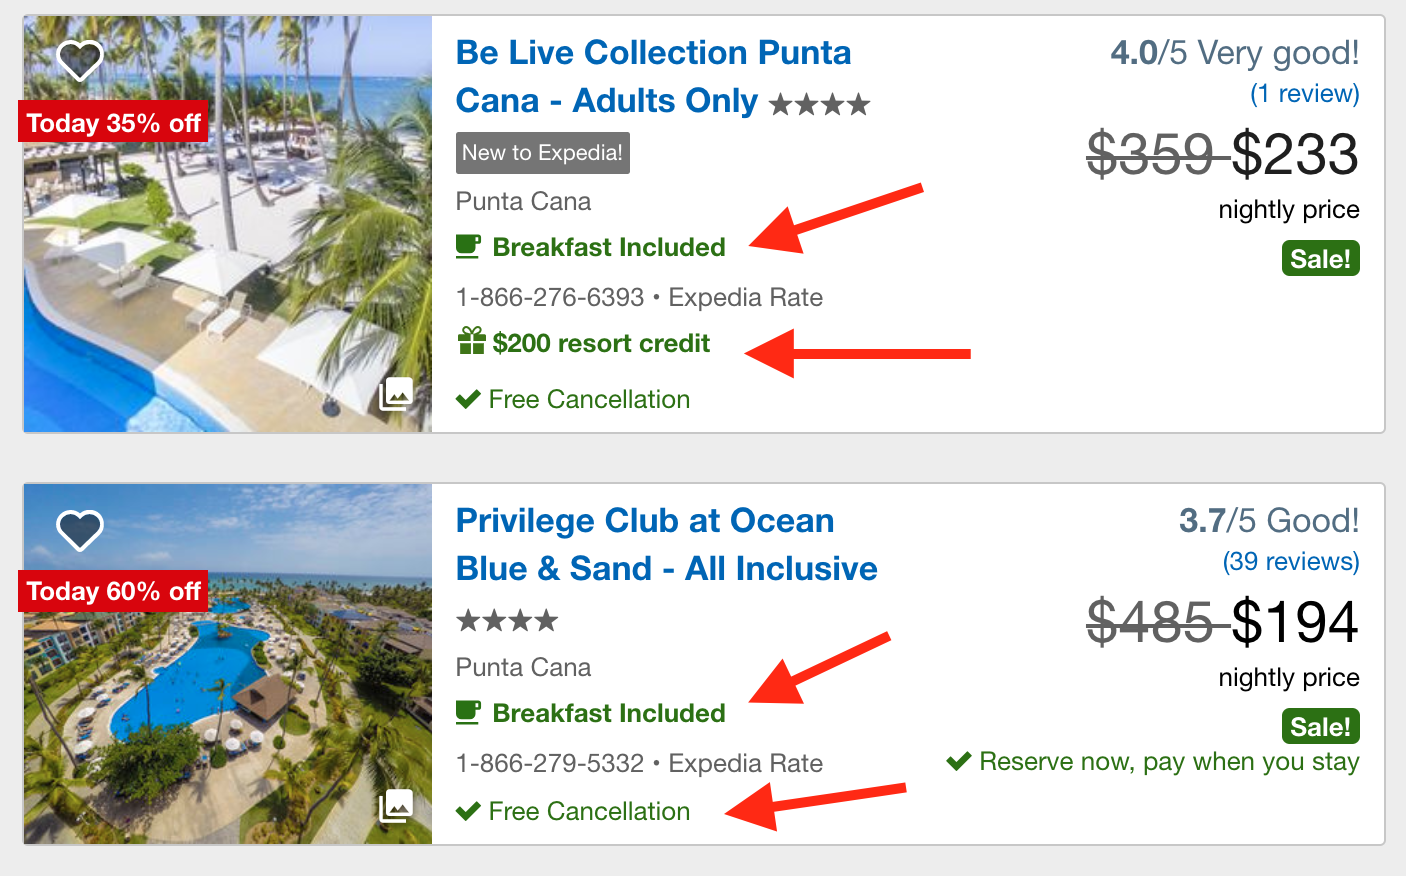 Find Great Deals on Expedia - Flights, Vacation Packages [2019]